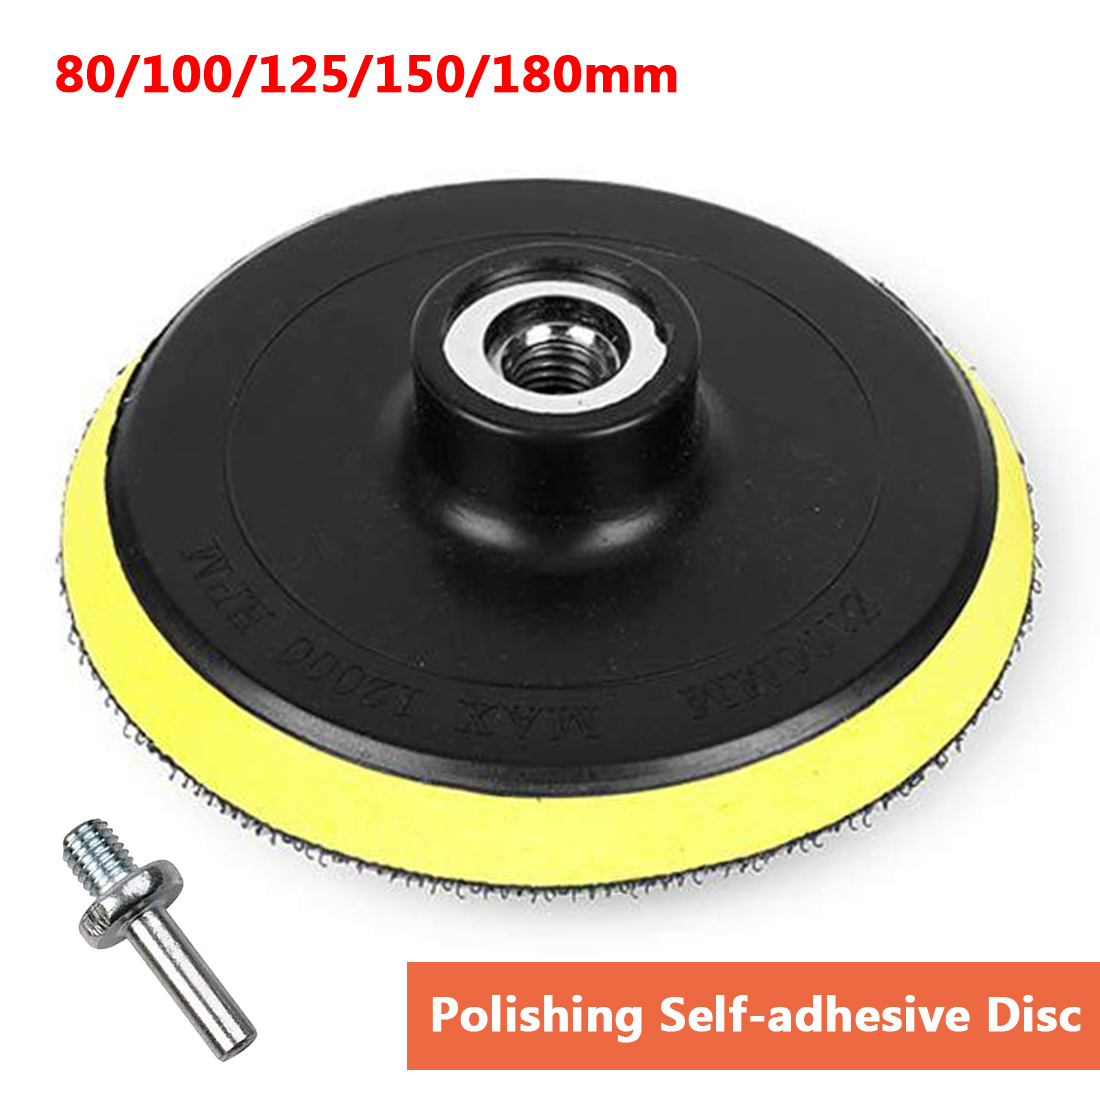 Dedicated Dremel 80-180mm Polishing Self-adhesive Disc Polishing Sandpaper Sheet Adhesive Disc Chuck Angle Grinder Sticky Plate For Car Quality And Quantity Assured Tools